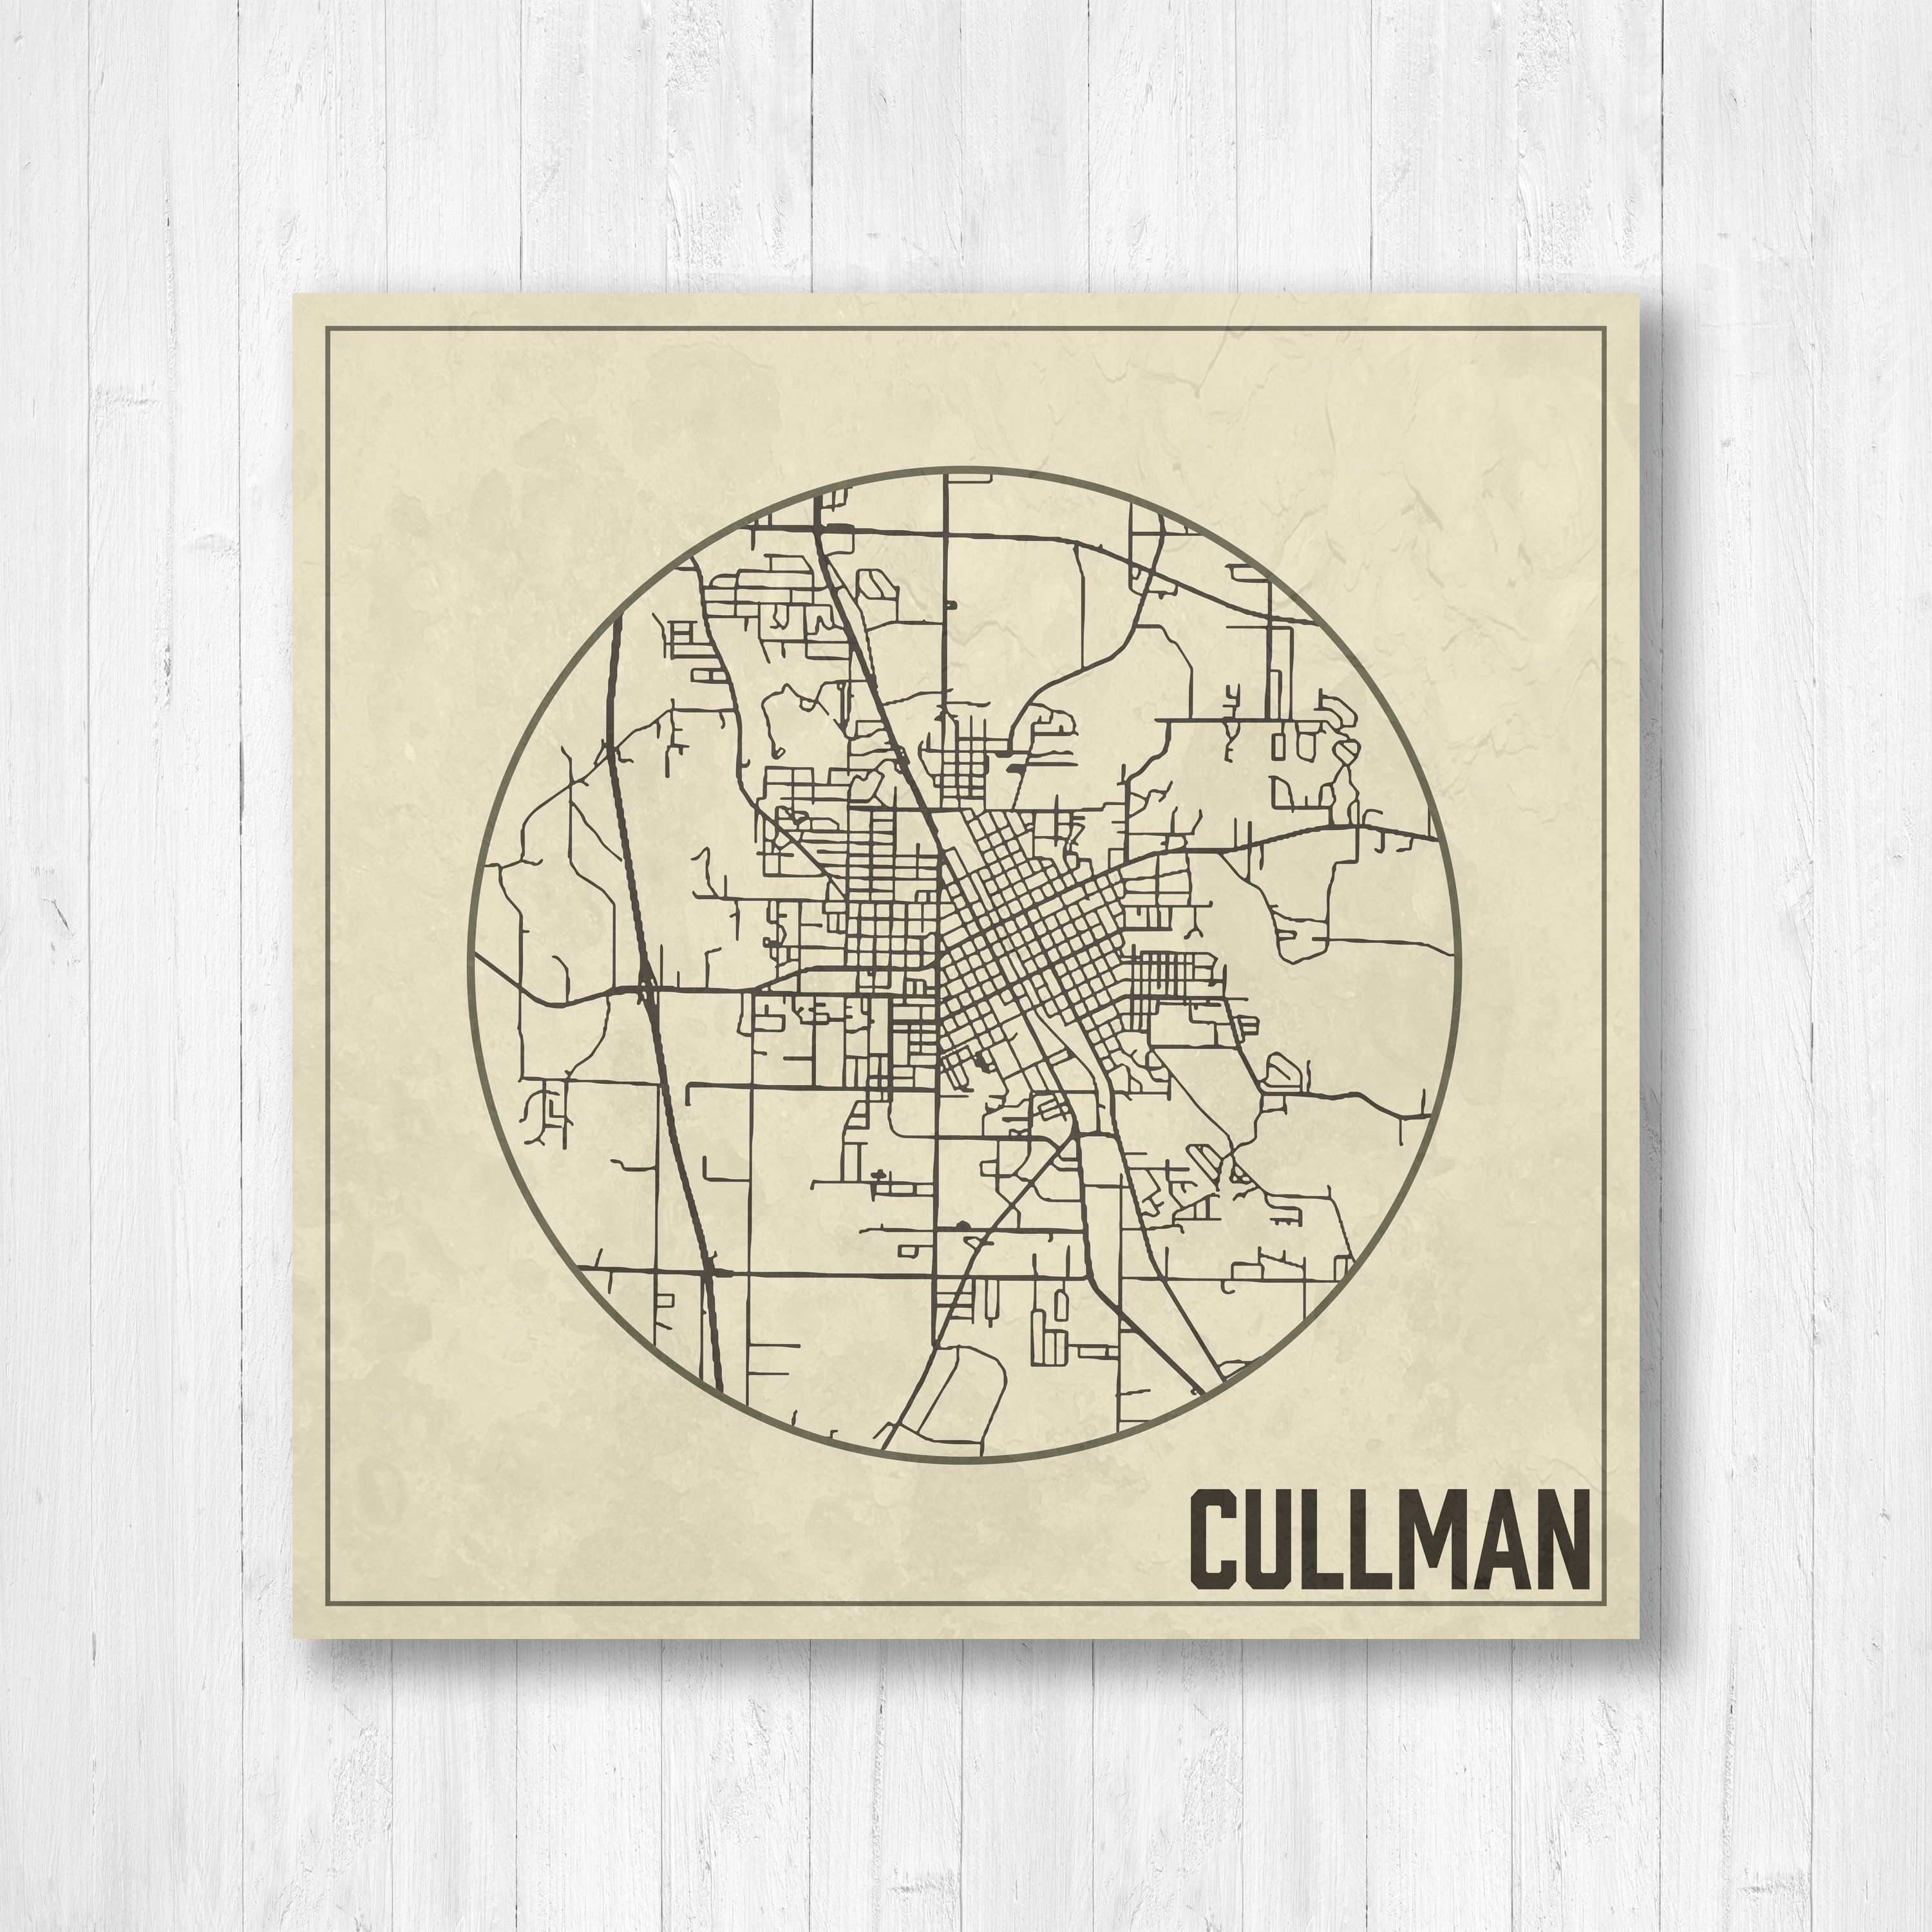 Cullman, Alabama, Cullman Street Map, Map with Streets, Weathered ...